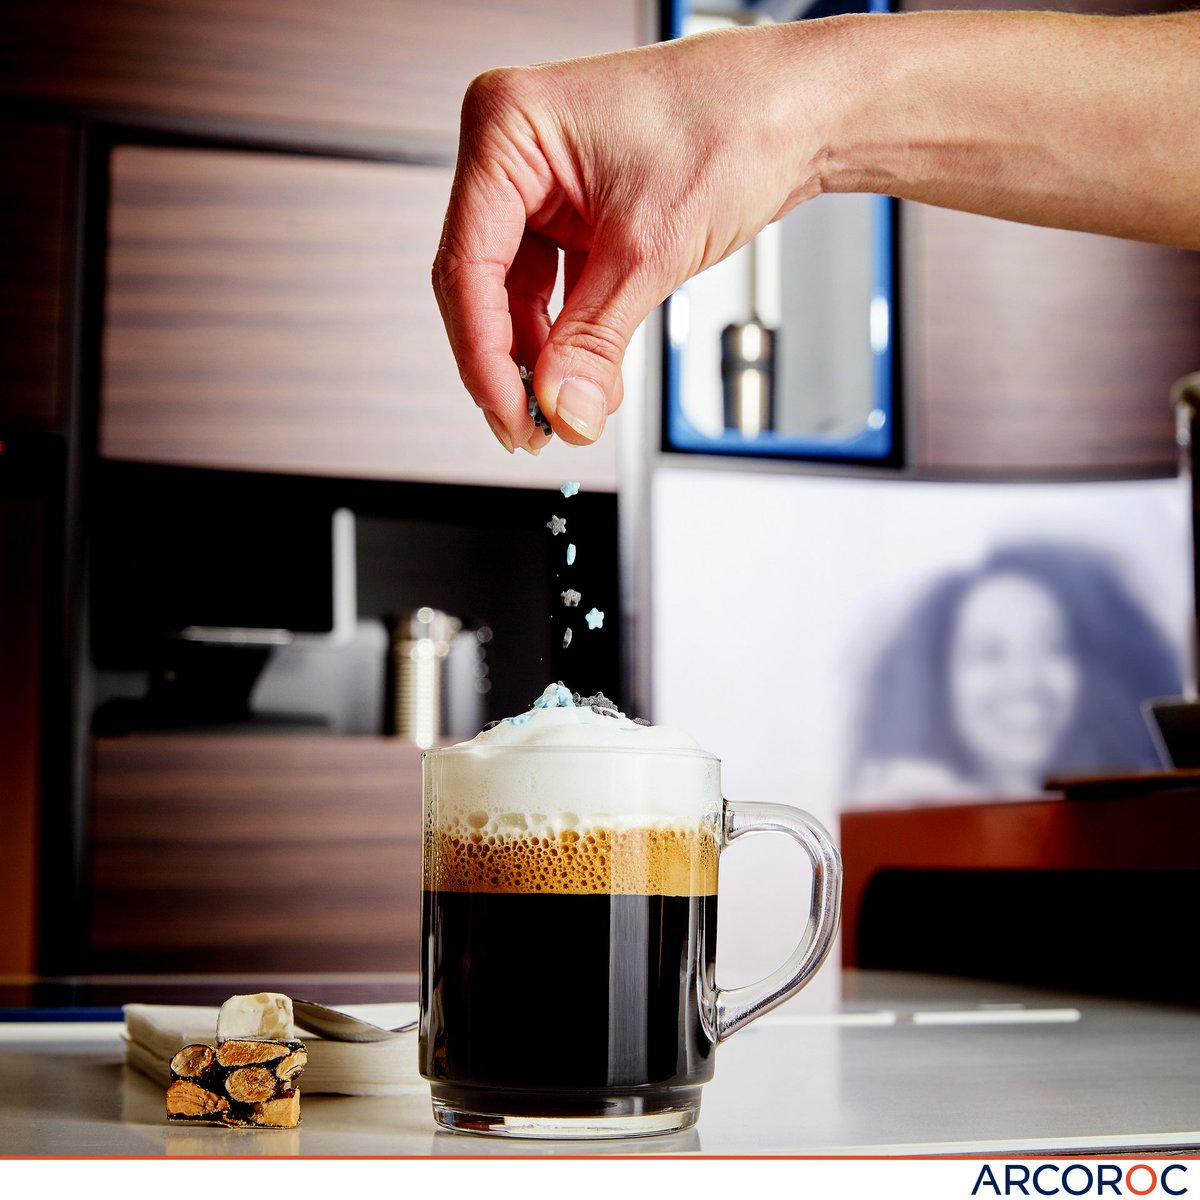 Arc Tableware UK on Twitter \ Arc Tableware delivering some much need #MondayMotivation in the form of putting sprinkles on a coffee!!! & Arc Tableware UK on Twitter: \